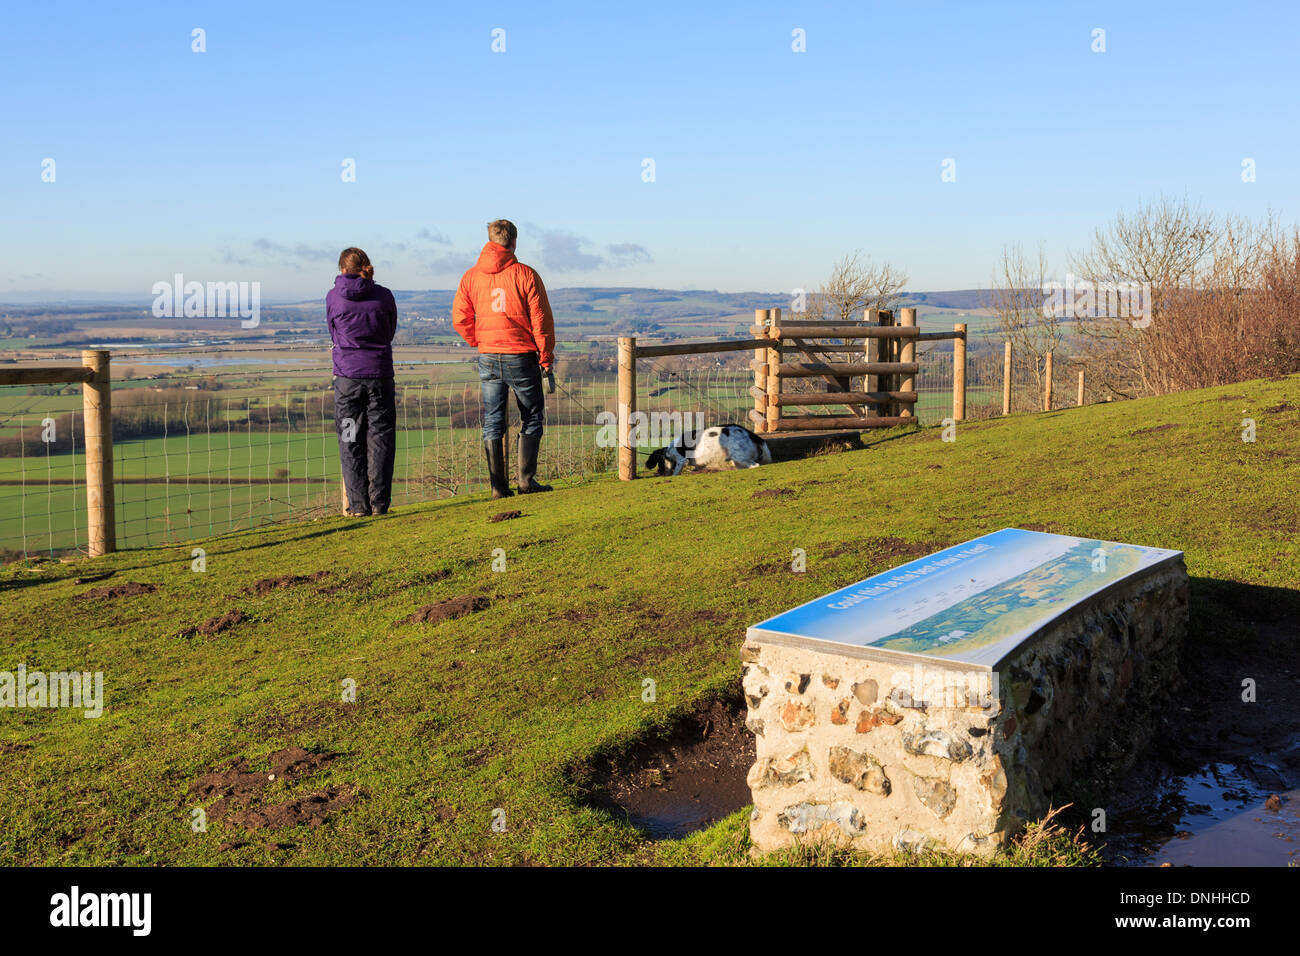 Two people enjoying view looking west from viewpoint in Wye National Nature Reserve hills on North Downs Way Kent England UK Britain - Stock Image